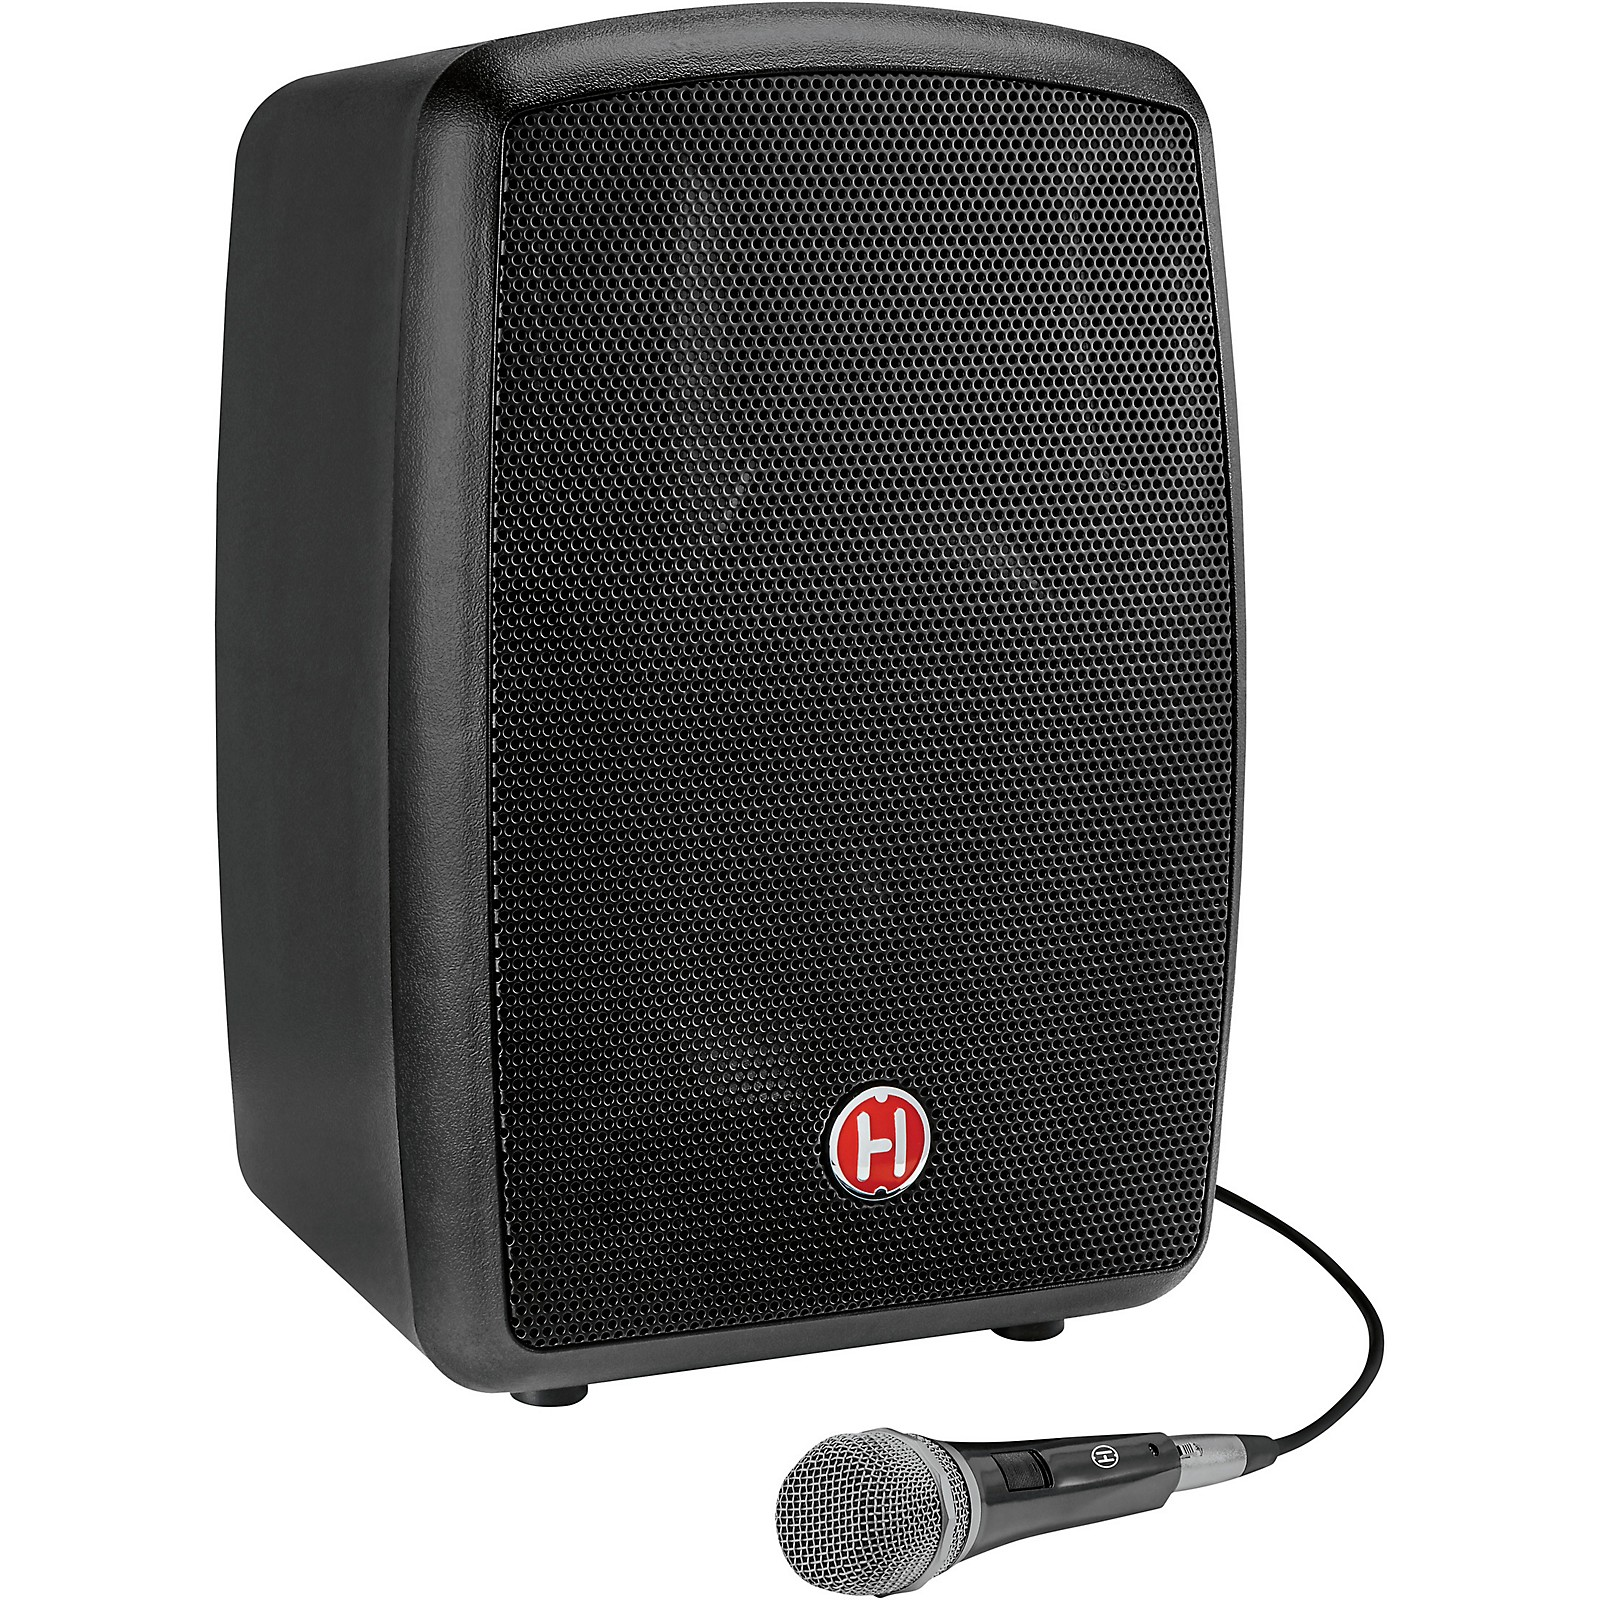 Harbinger RoadTrip 25 8in. Battery-Powered Portable Speaker with Bluetooth and Microphone